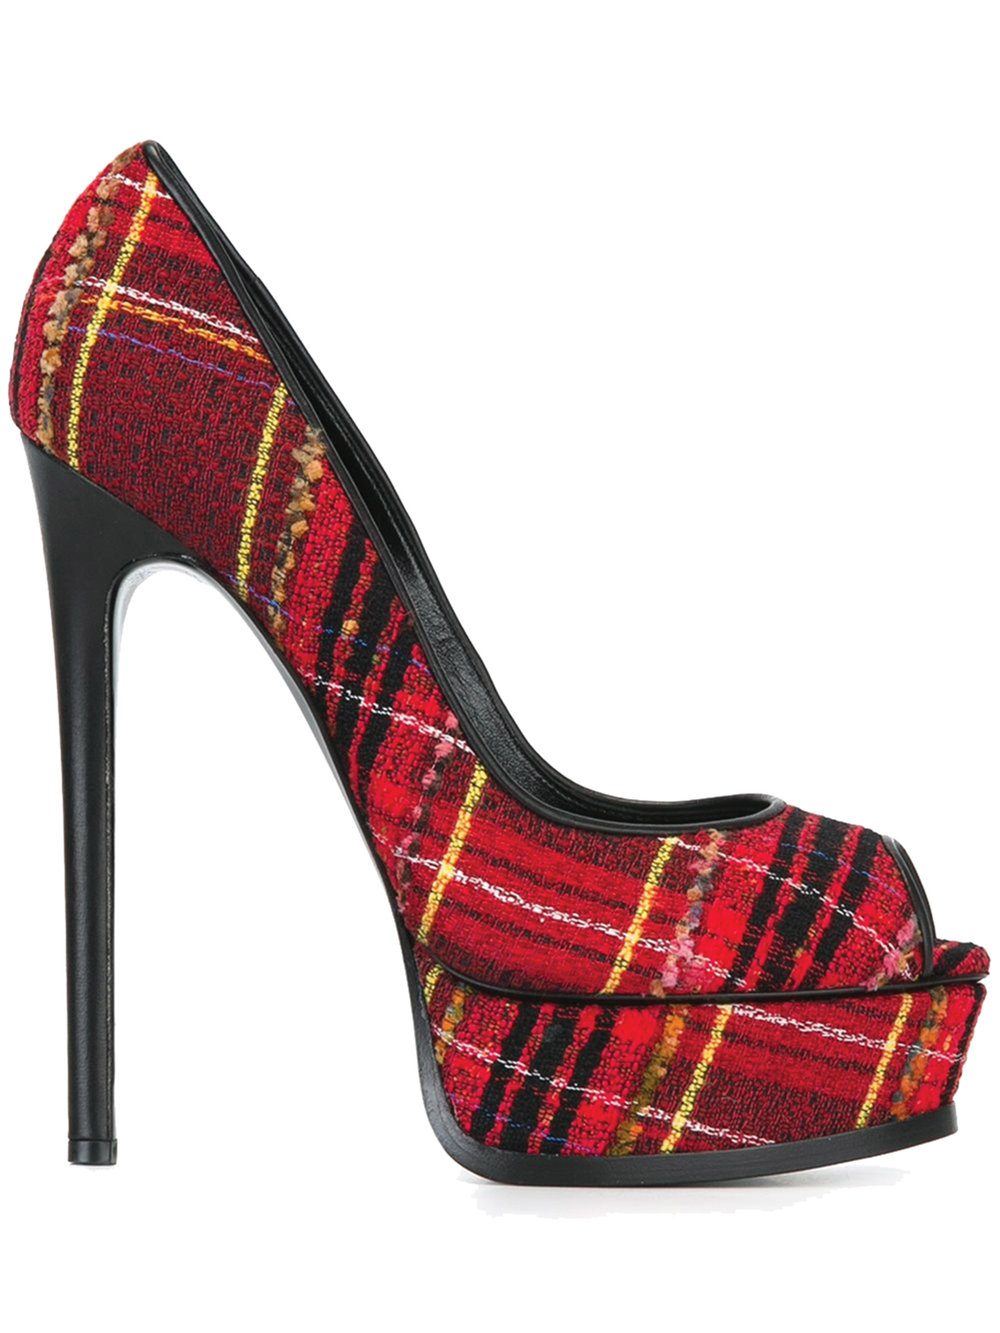 Casadei Checked Peep Toe Pump $1,052